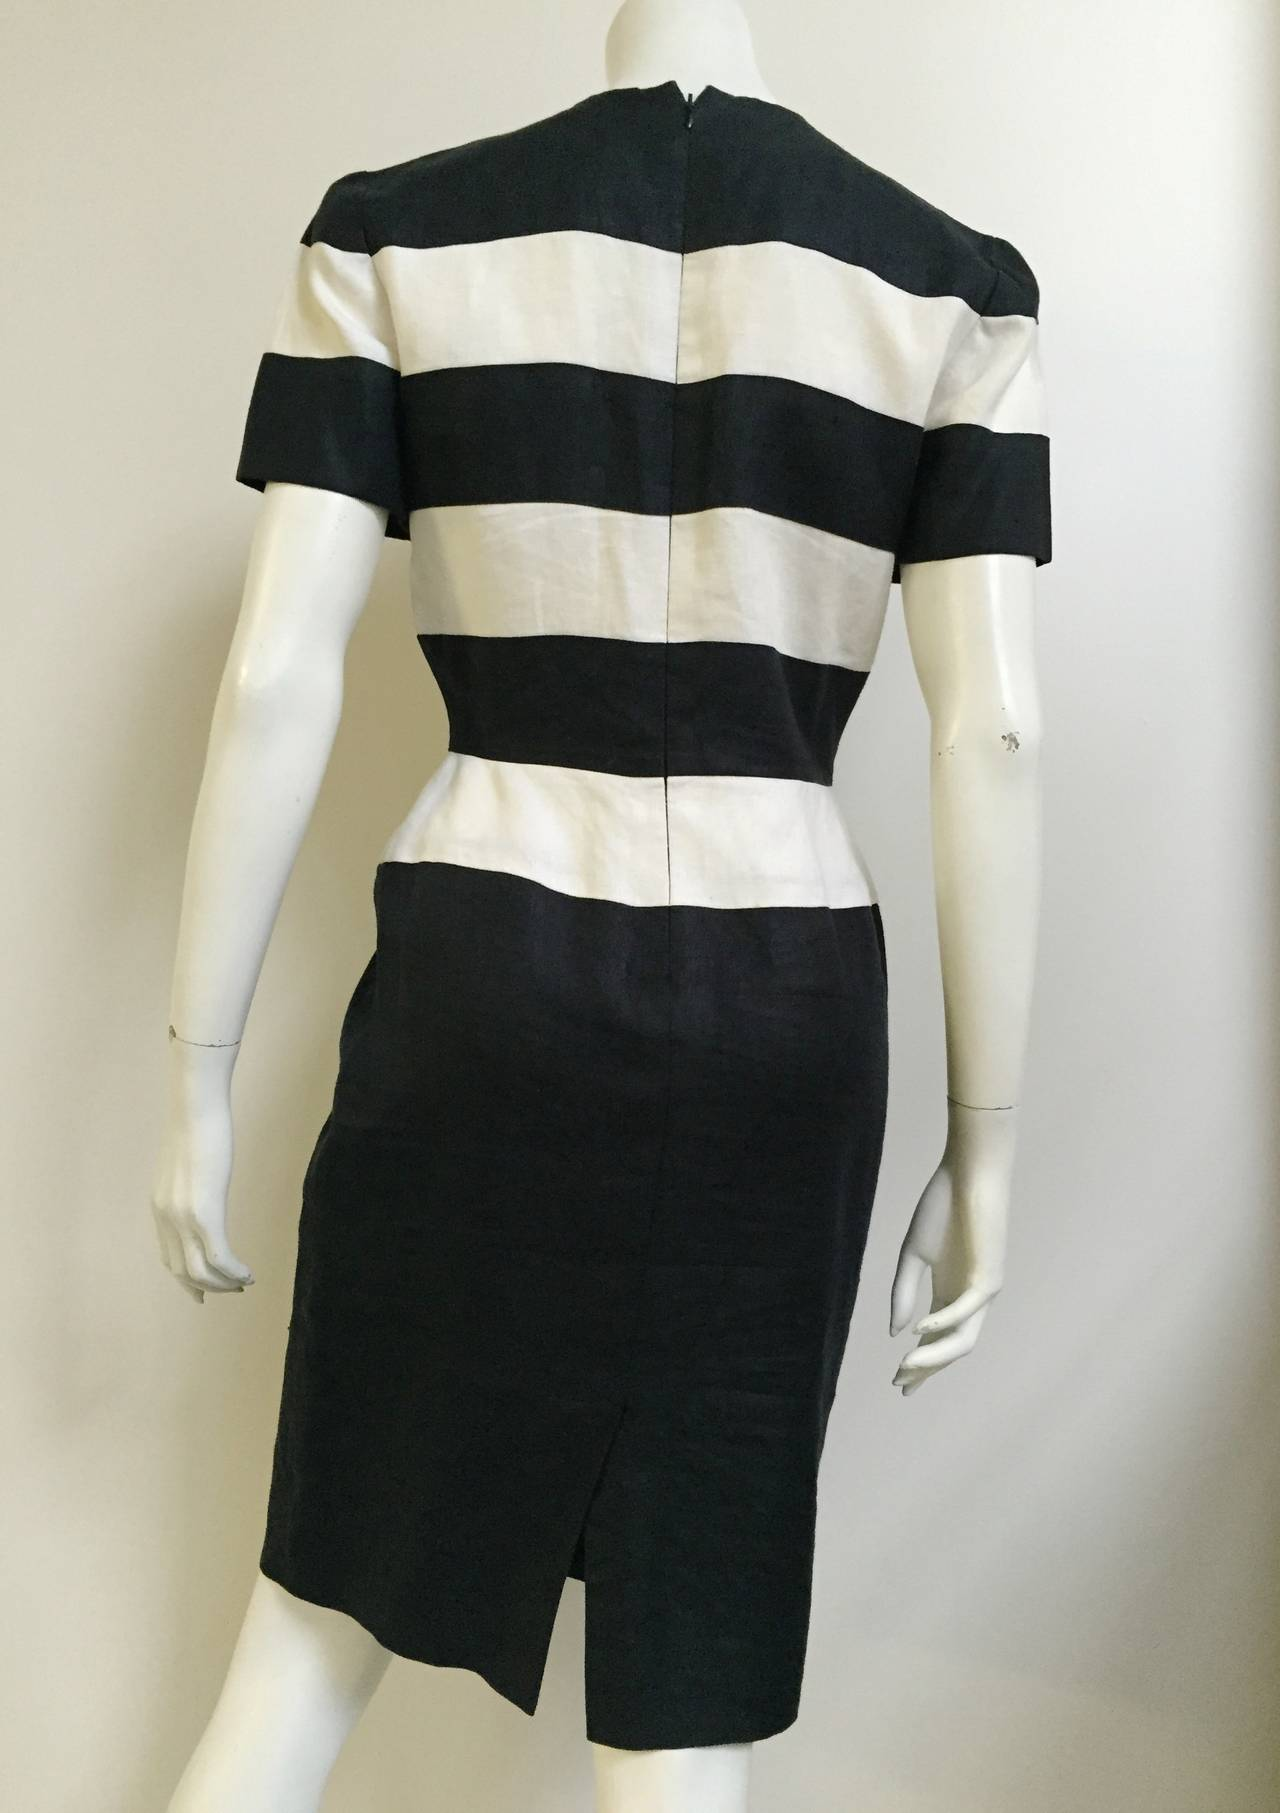 Scaasi 80s linen striped sheath dress size 4. 4